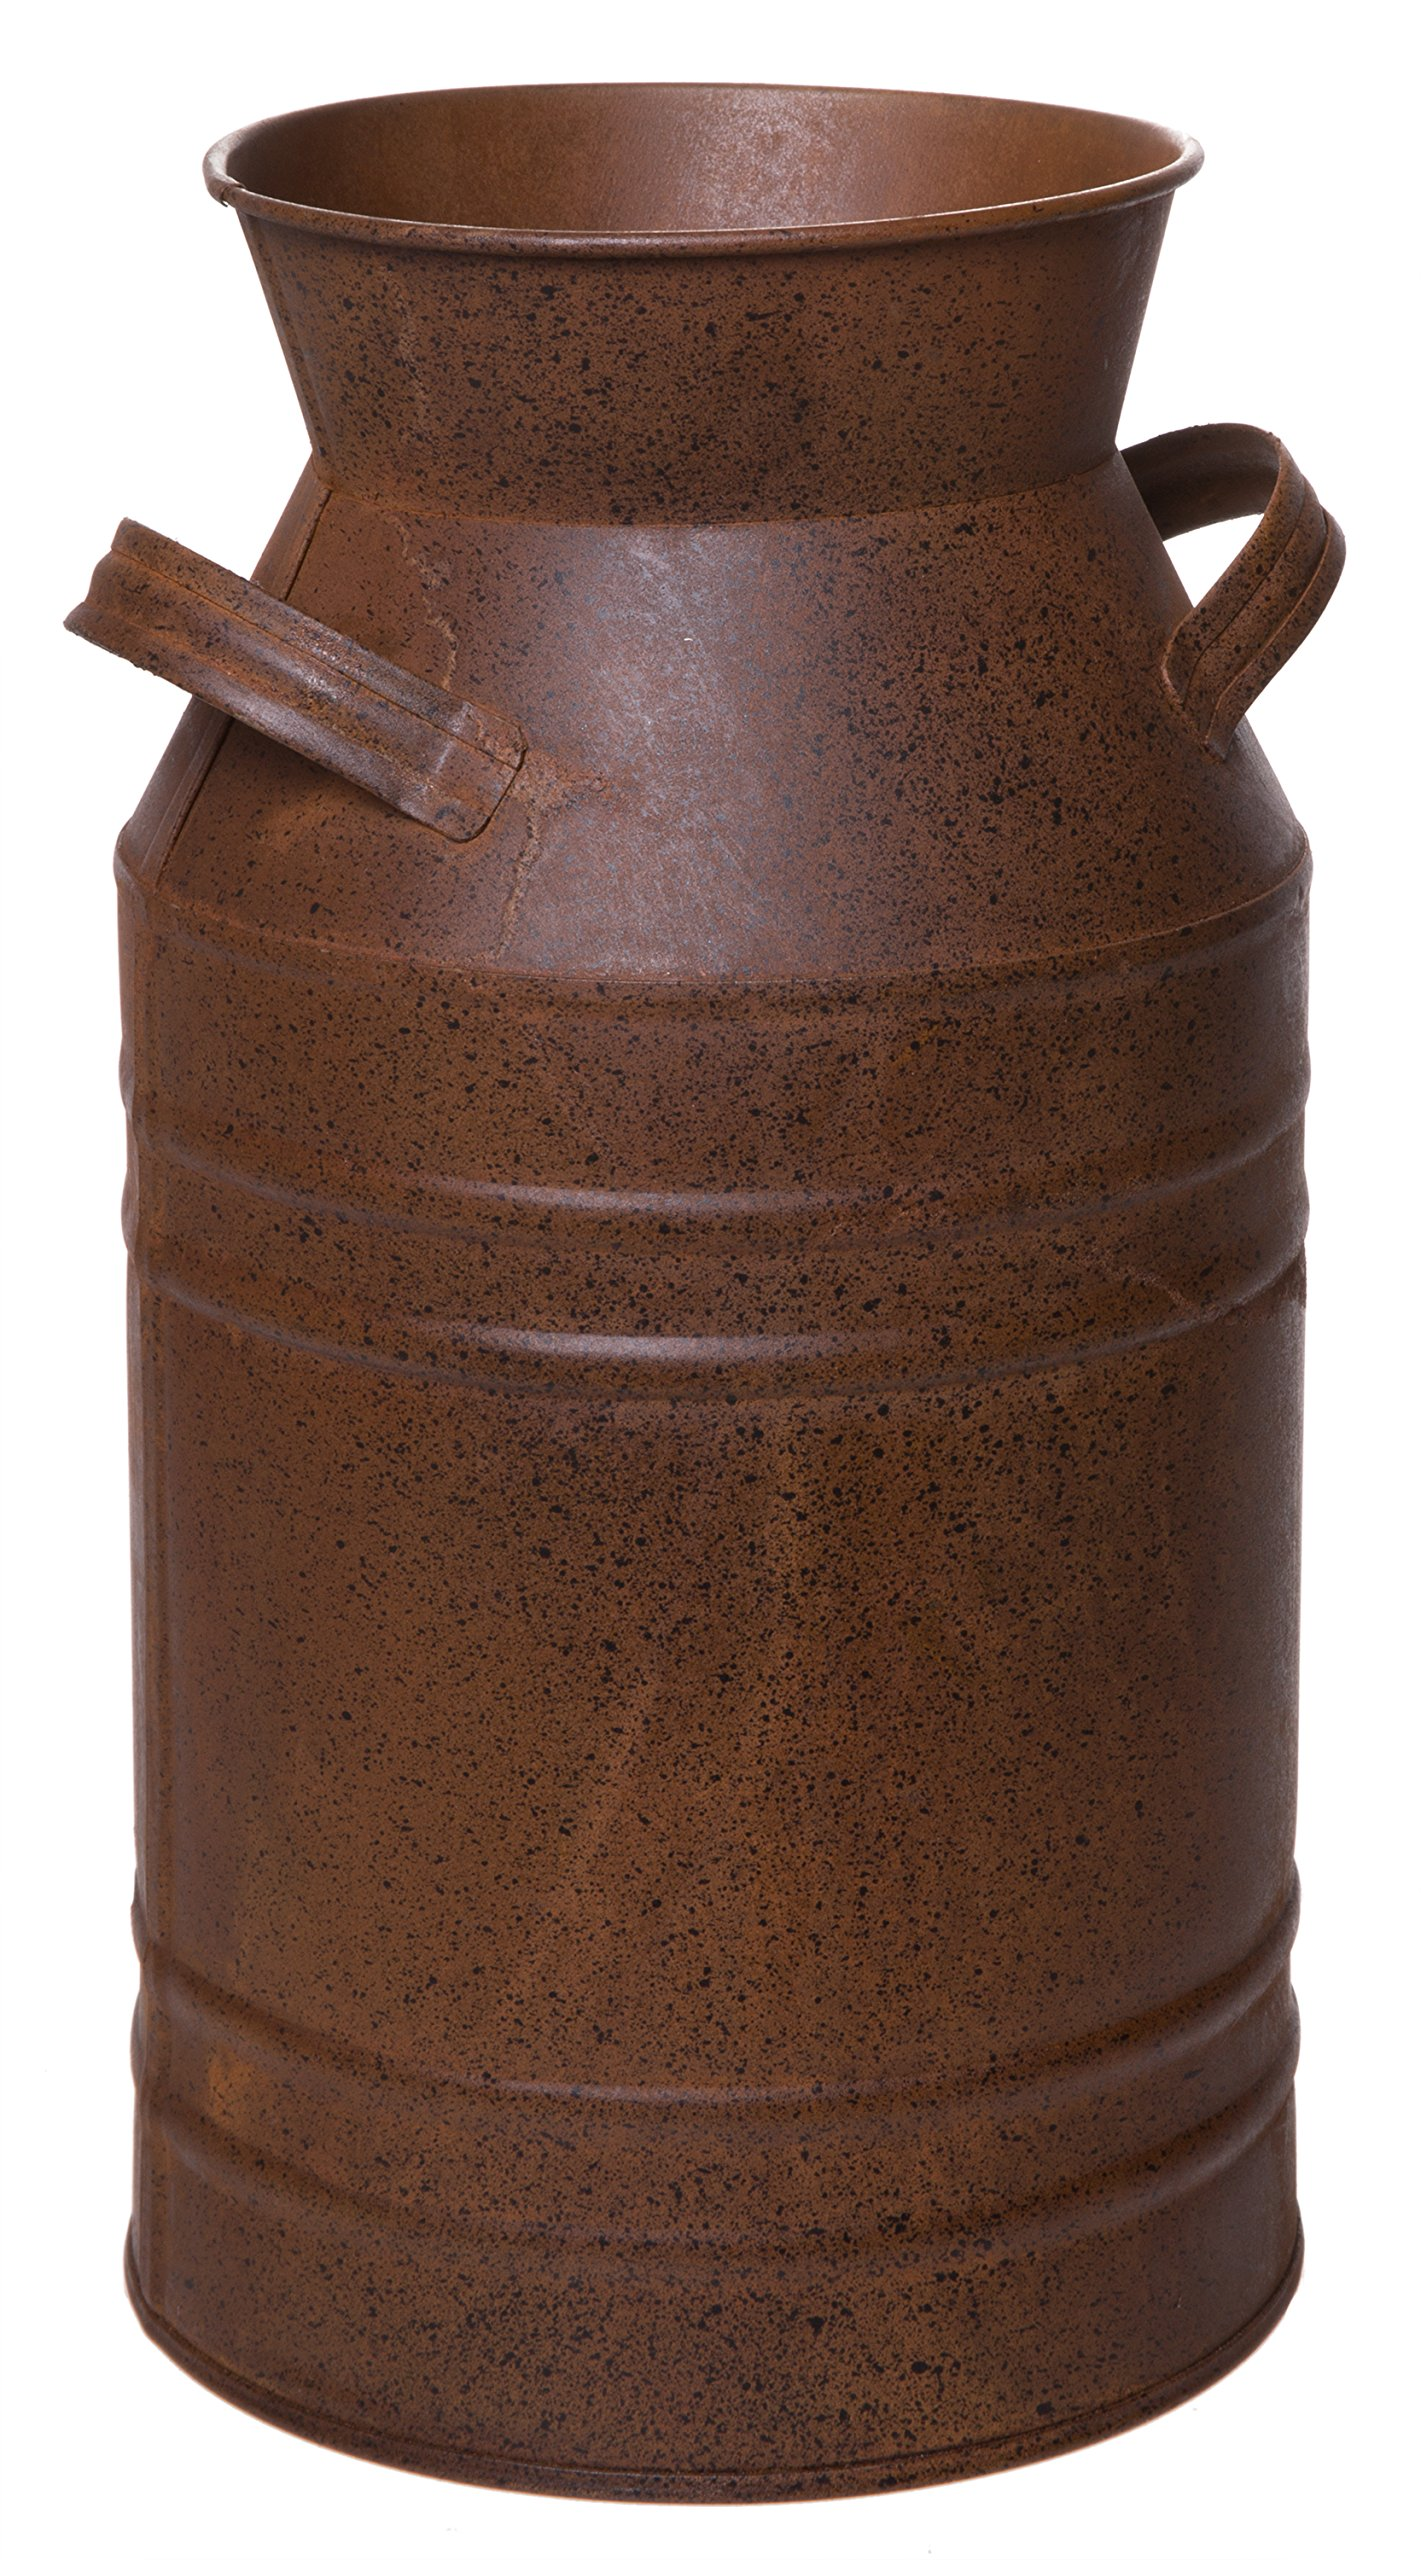 Red Co. Country Round French Pot Galvanized Metal Milk Can Multifunctional Bucket in Brown - 11 Inches High